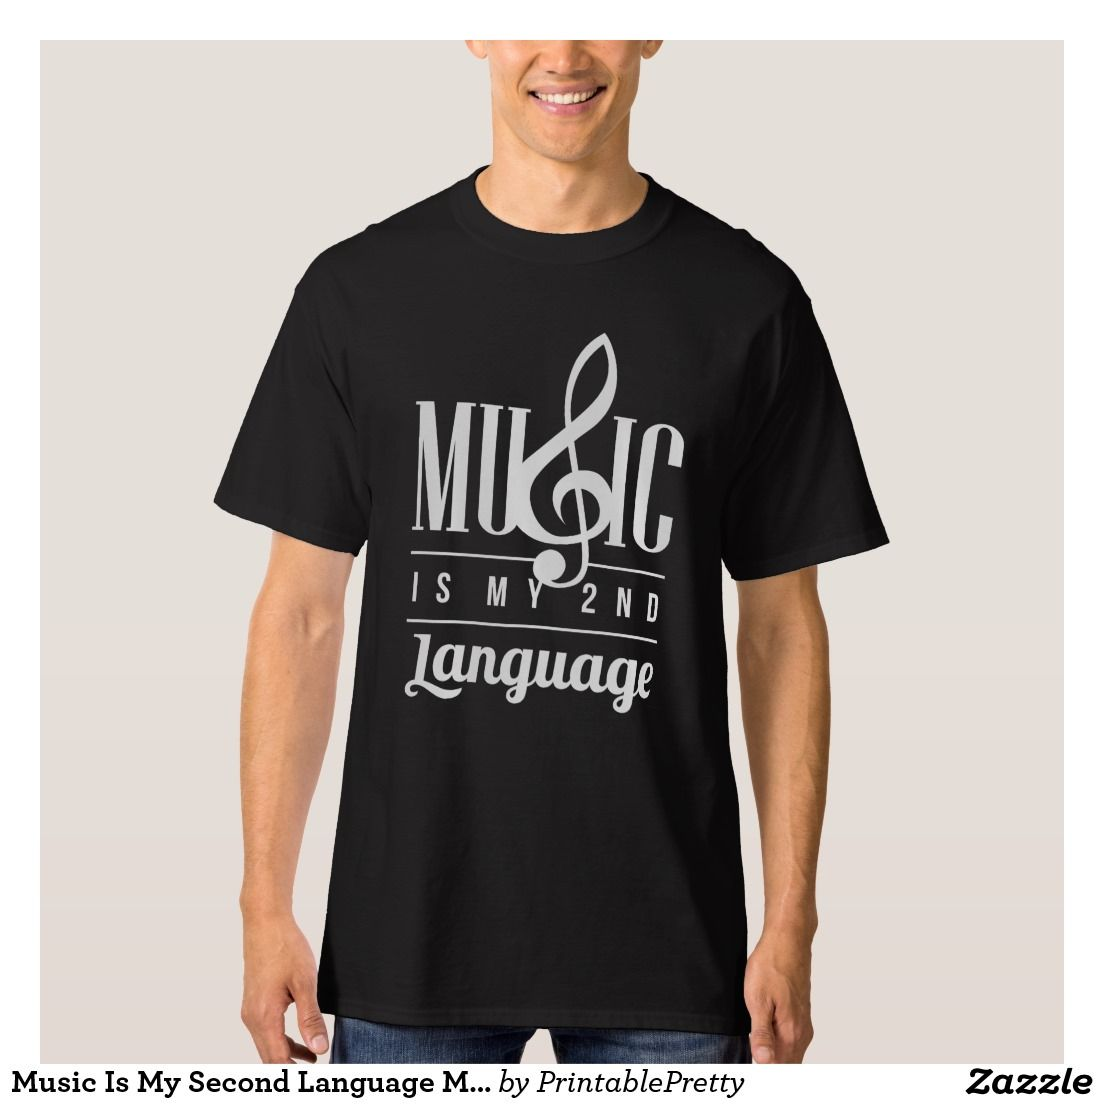 Zazzle t shirt design size - Music Is My 2nd Language Musician Quote Sayings Graphic Tee Shirt Design We Offer A Great